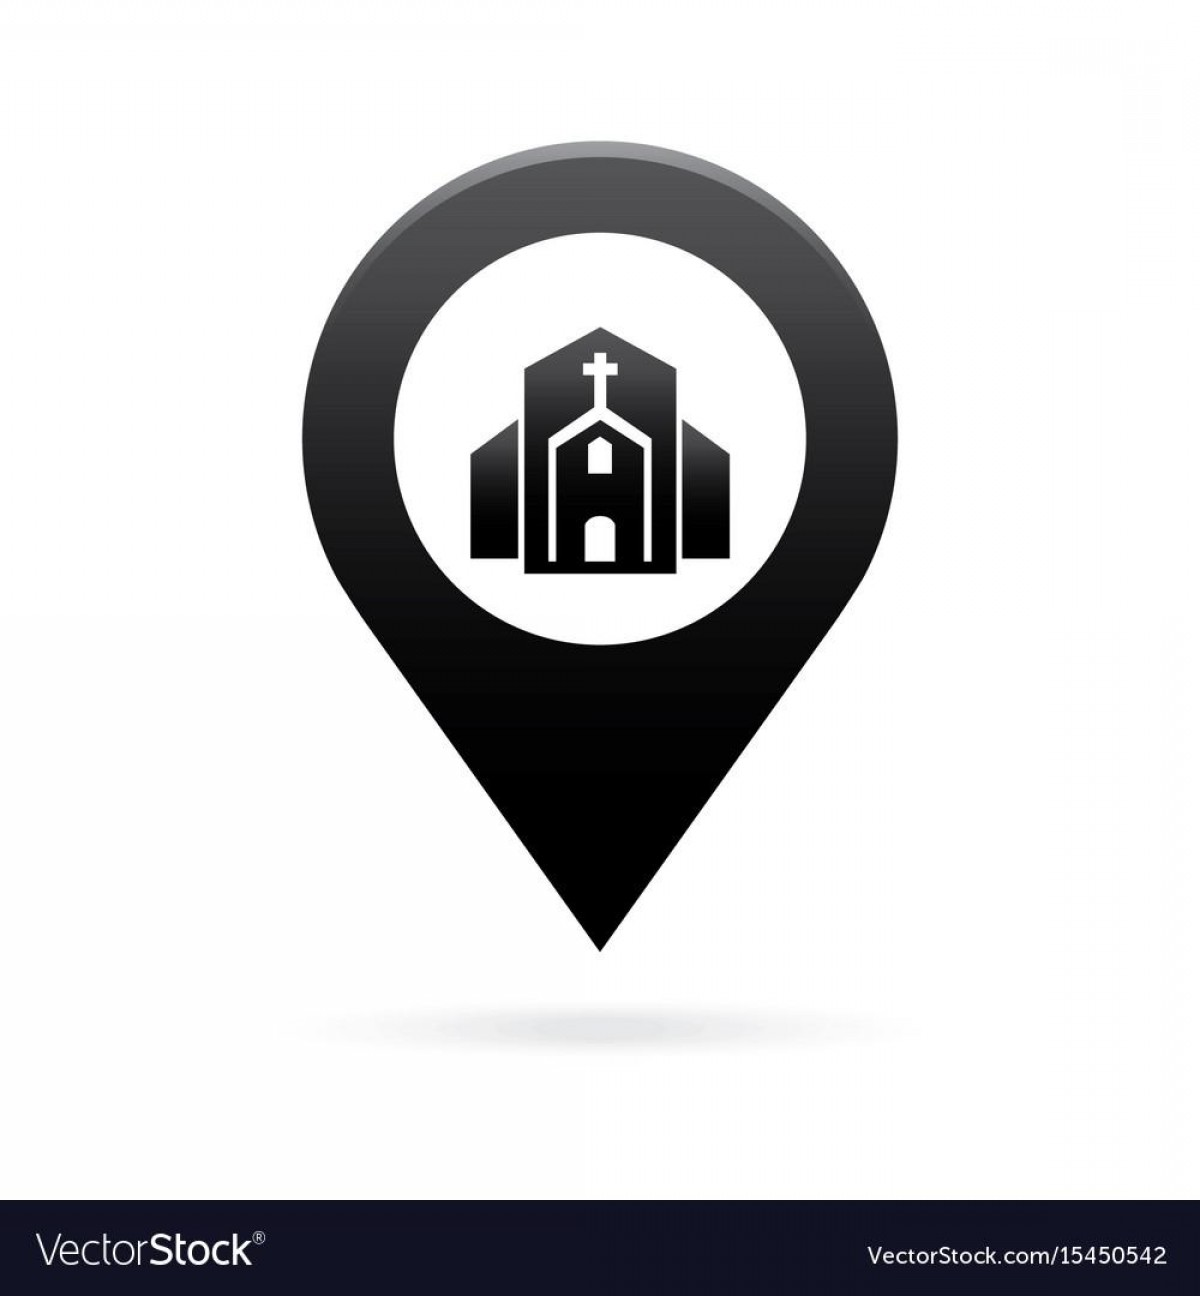 Unique Pointer Vector: Unique Church Map Pointer Icon Marker Gps Location Flag Vector Images